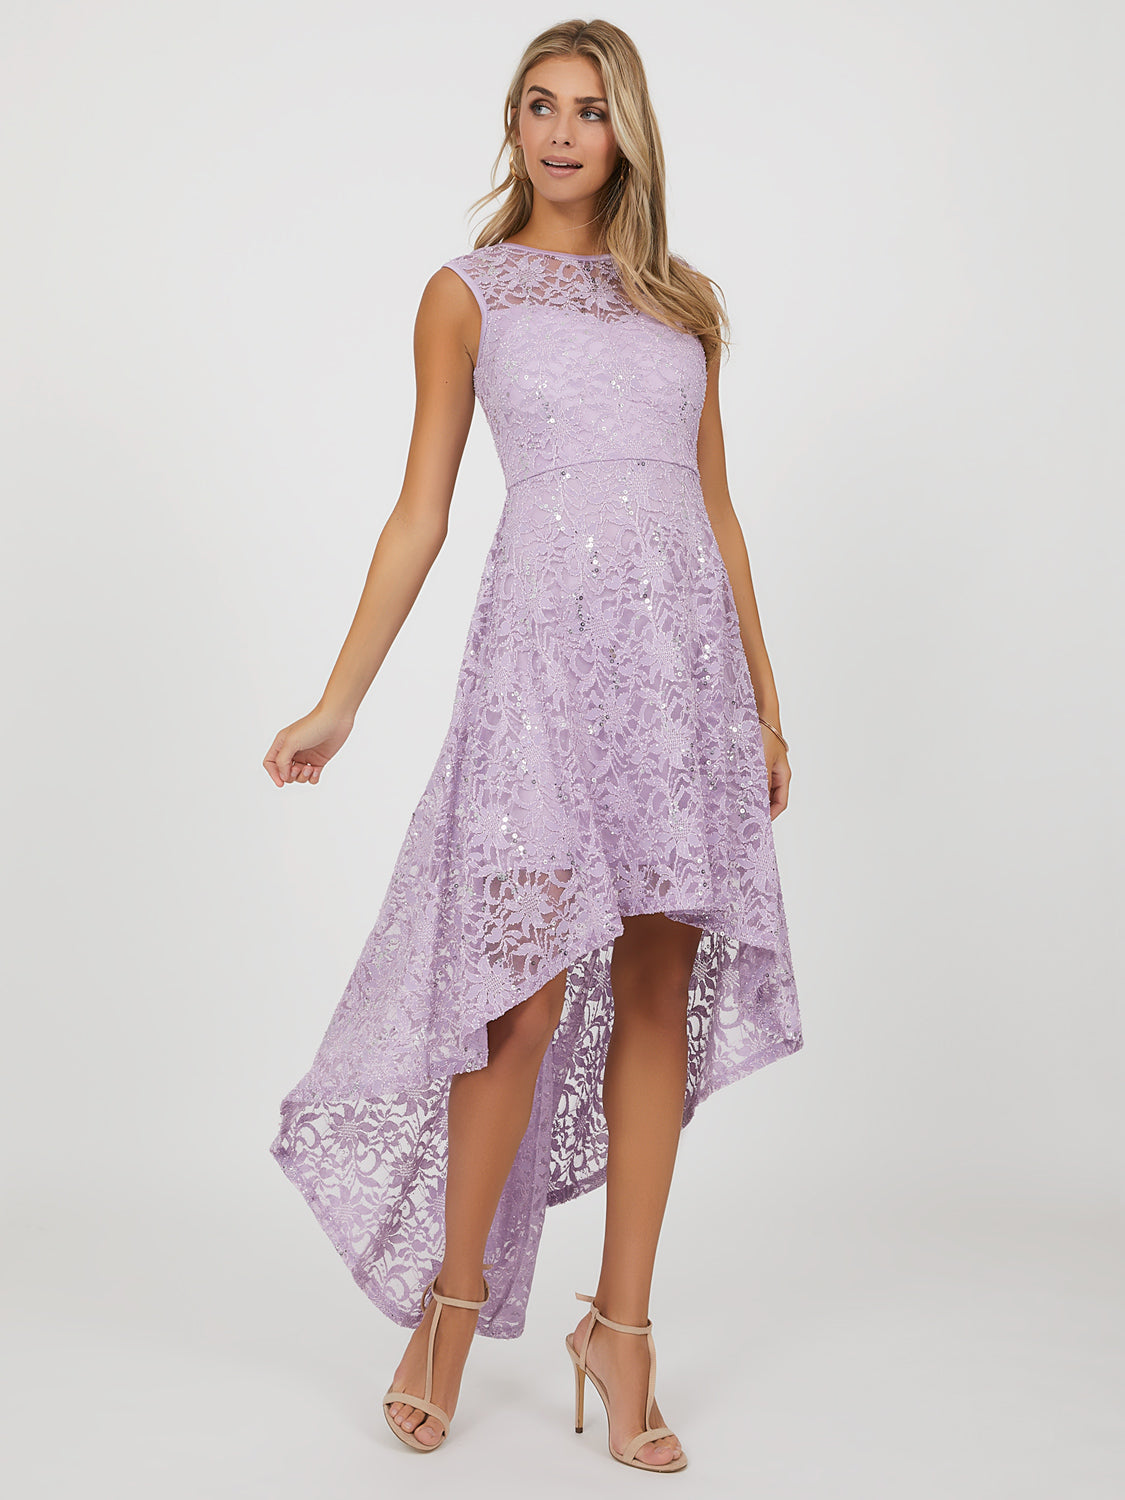 High-Low Sequins & Lace Dress